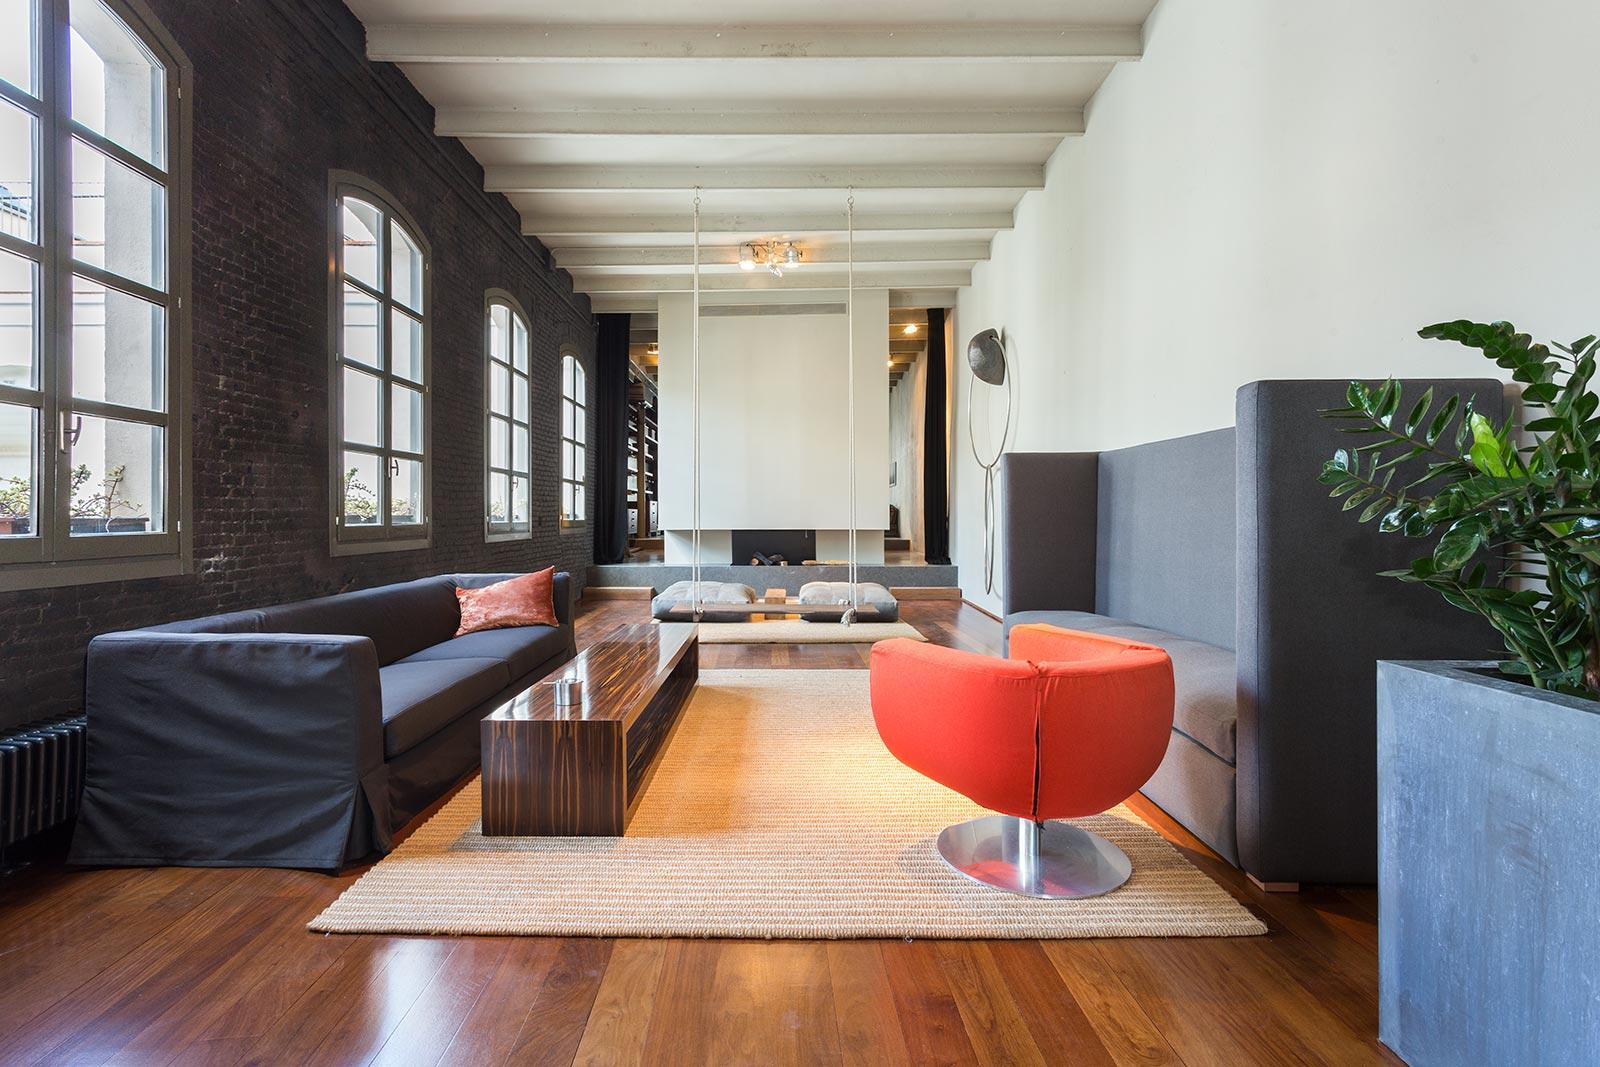 3. Stylish apartment for sale in Barcelona city - Step Inside A One-Of-A-Kind Barcelona Apartment